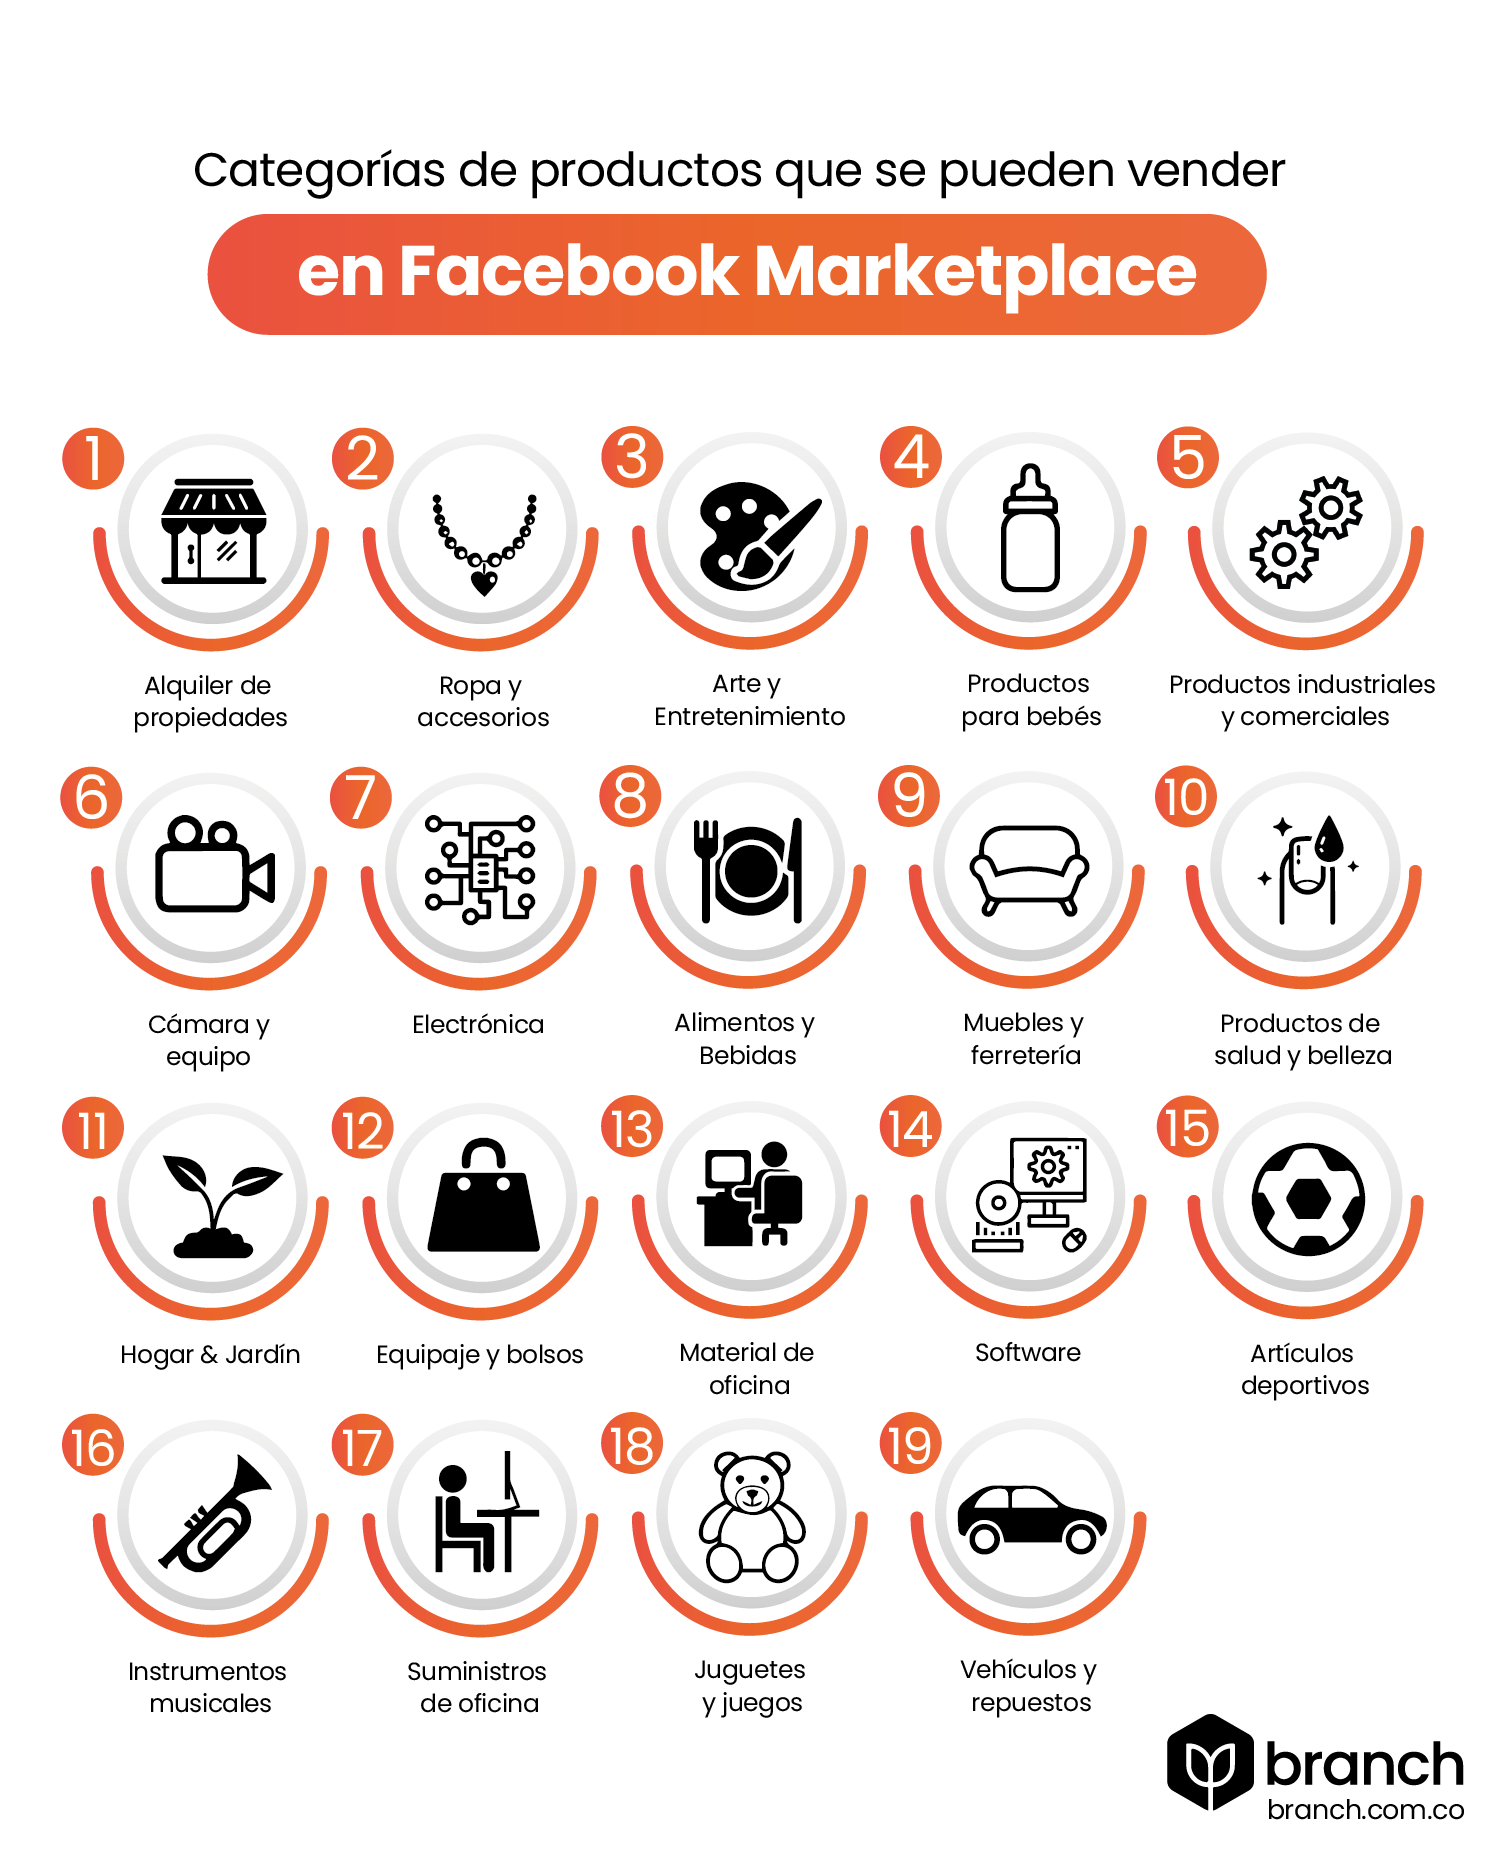 categorias-de-productos-que-se-pueden-vender-en-marketplace